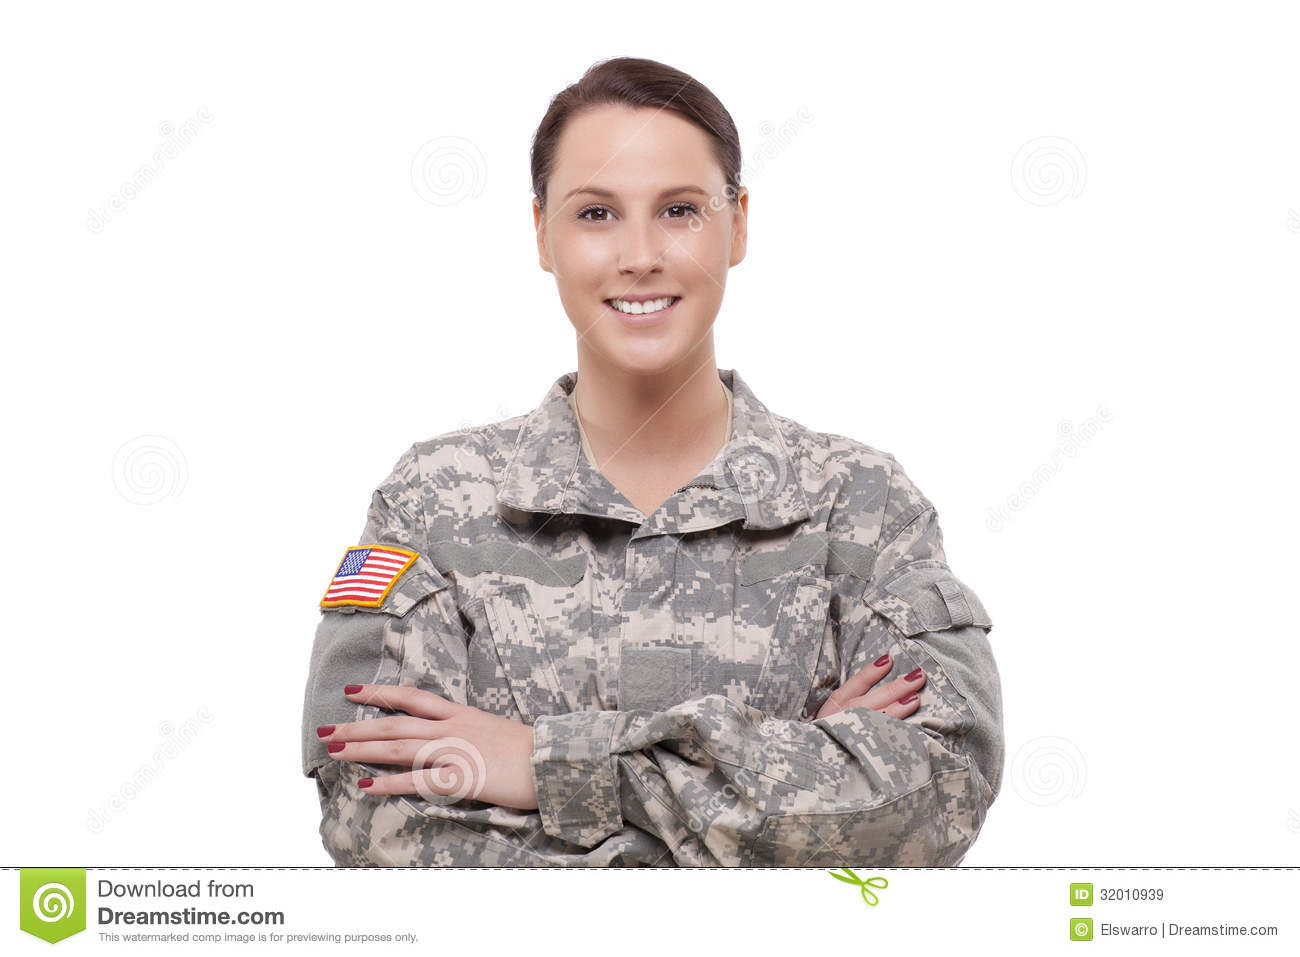 Camouflage - That Smiling Face - The Great Commandment